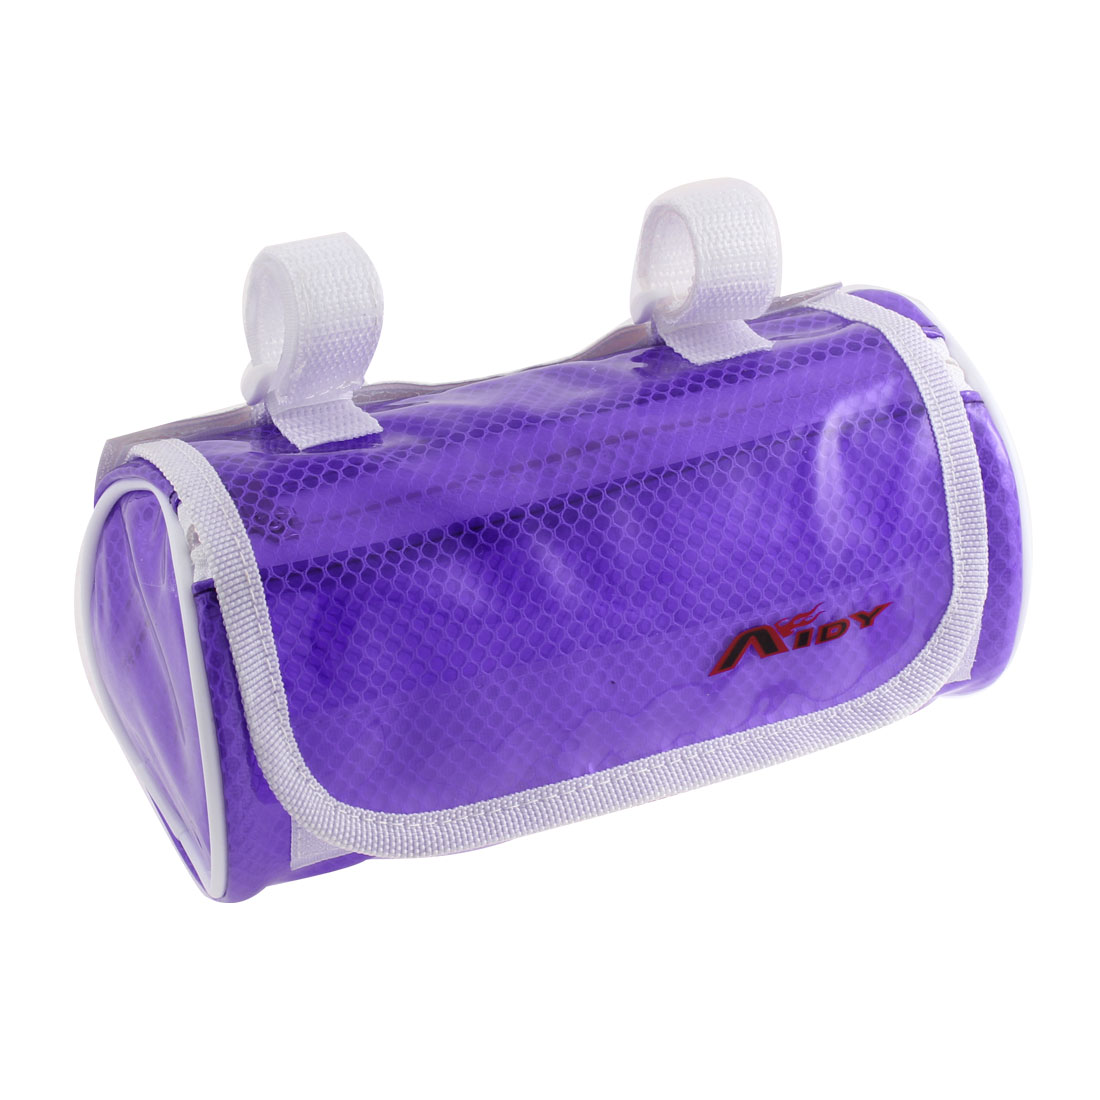 Cycling Bike Bicycle Front Pannier Basket Water Resistant Handlebar Bar Pouch Bag Clear Purple